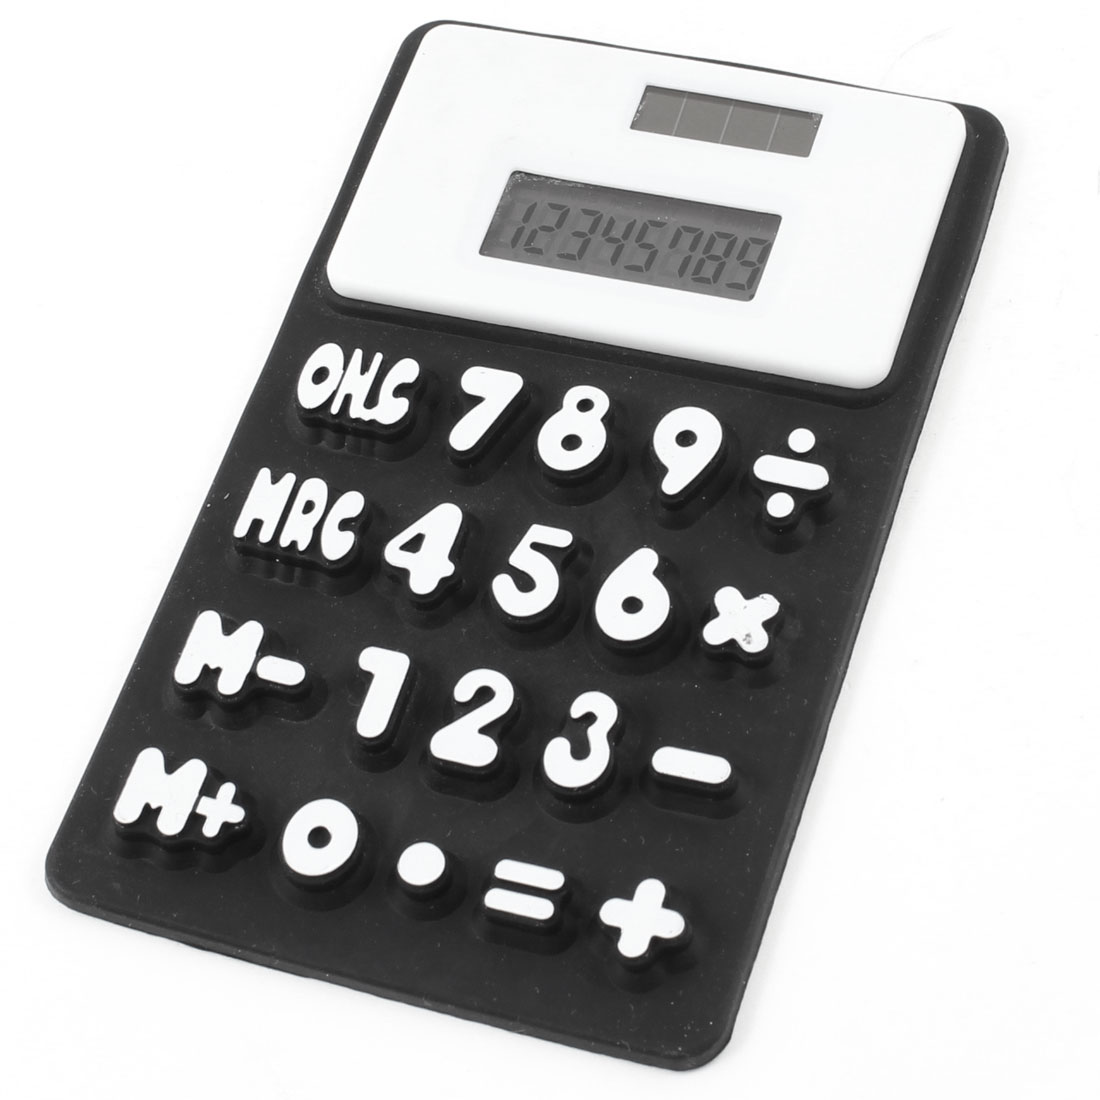 Refrigerator Arabic Number Keyboard 8 Digit Soft Silicone Calculator Black White